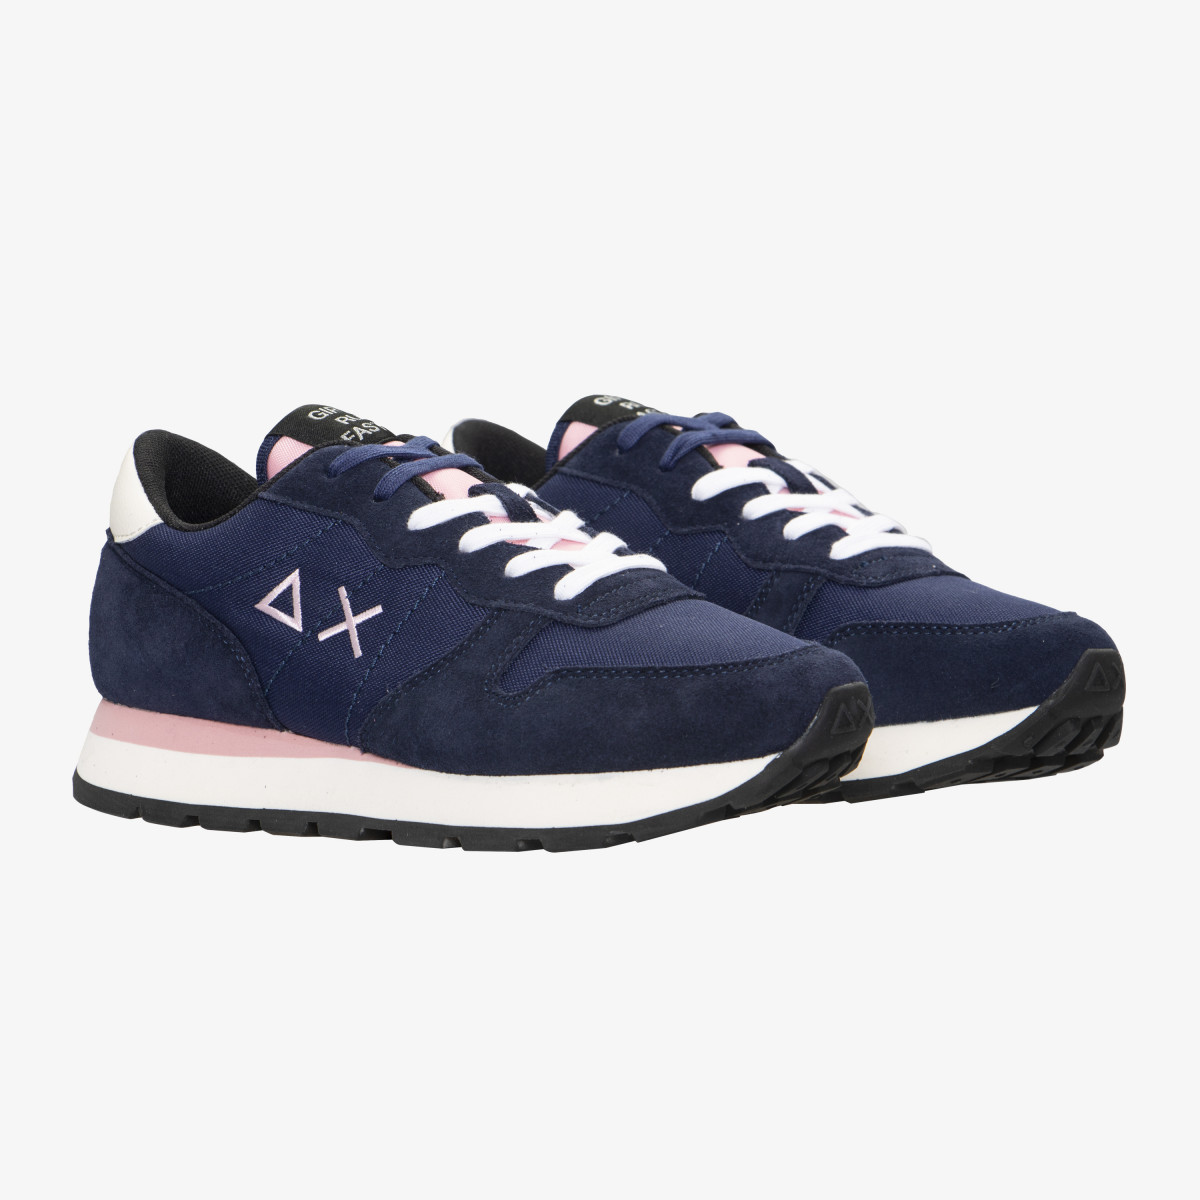 ALLY SOLID NAVY BLUE